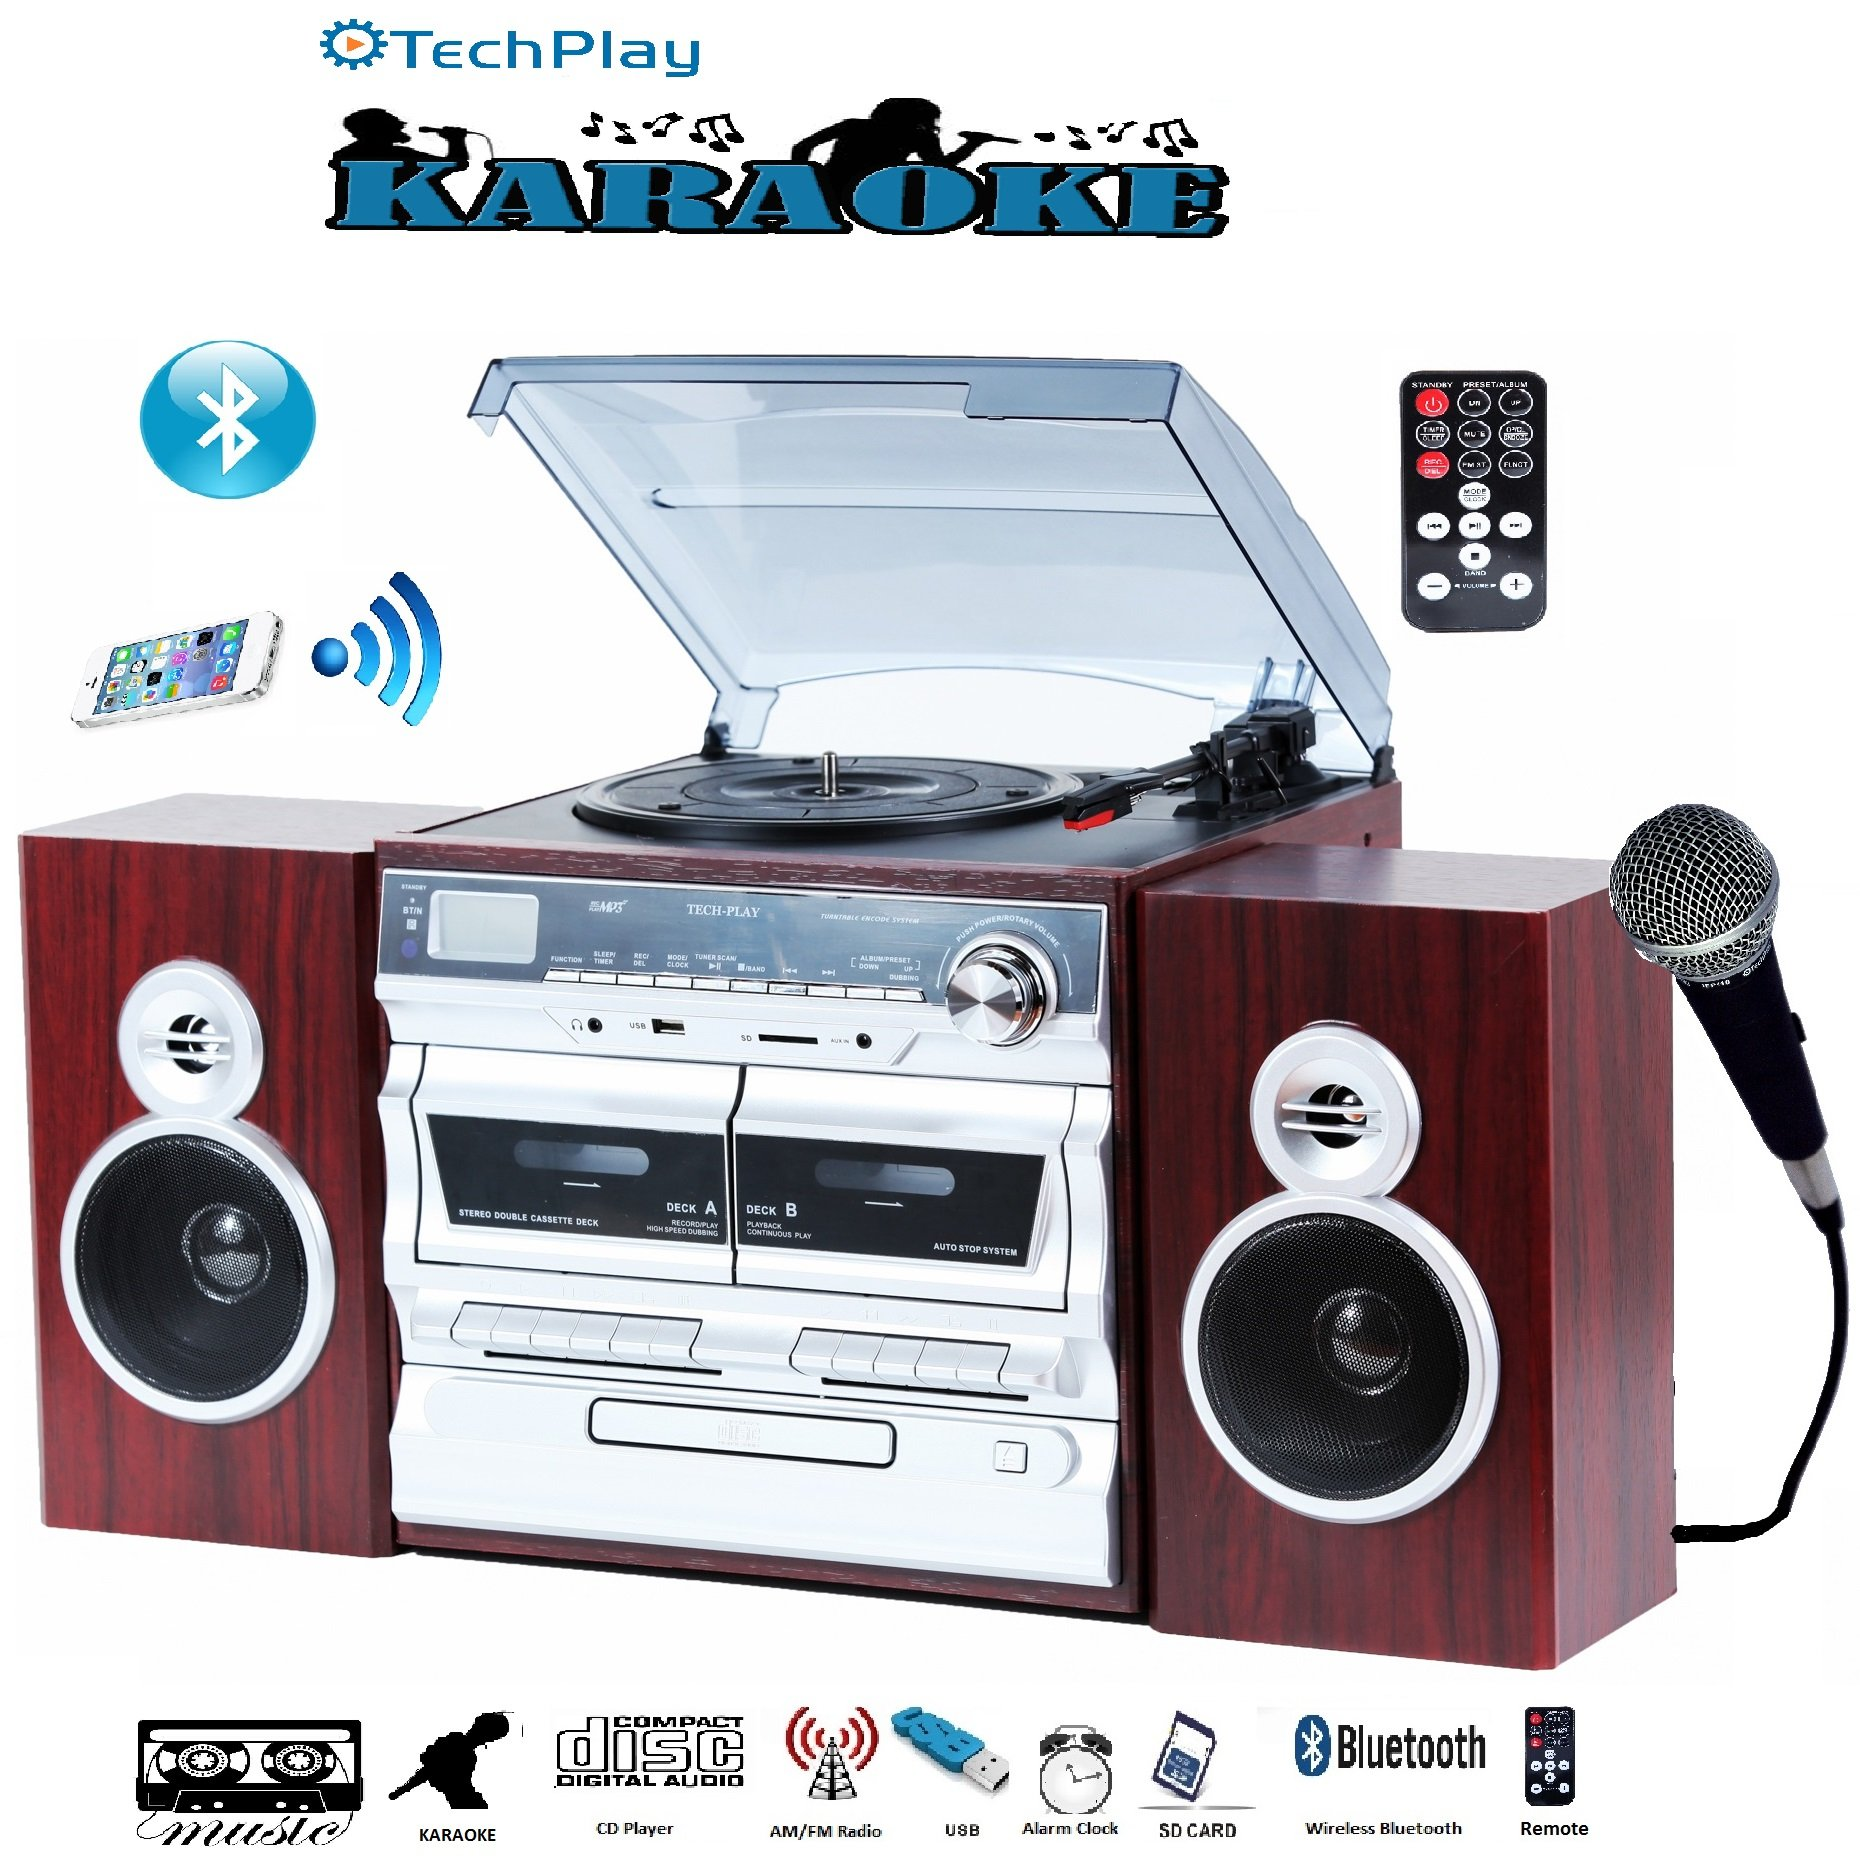 TechPlay Karaoke Enabled, 30W RMS, Retro Classic Turntable, NFC Bluetooth, Double cassette Player/Recorder, CD MP3 player, USB SD ports, AM/FM digital alarm clock and full remote control by TECH-PLAY